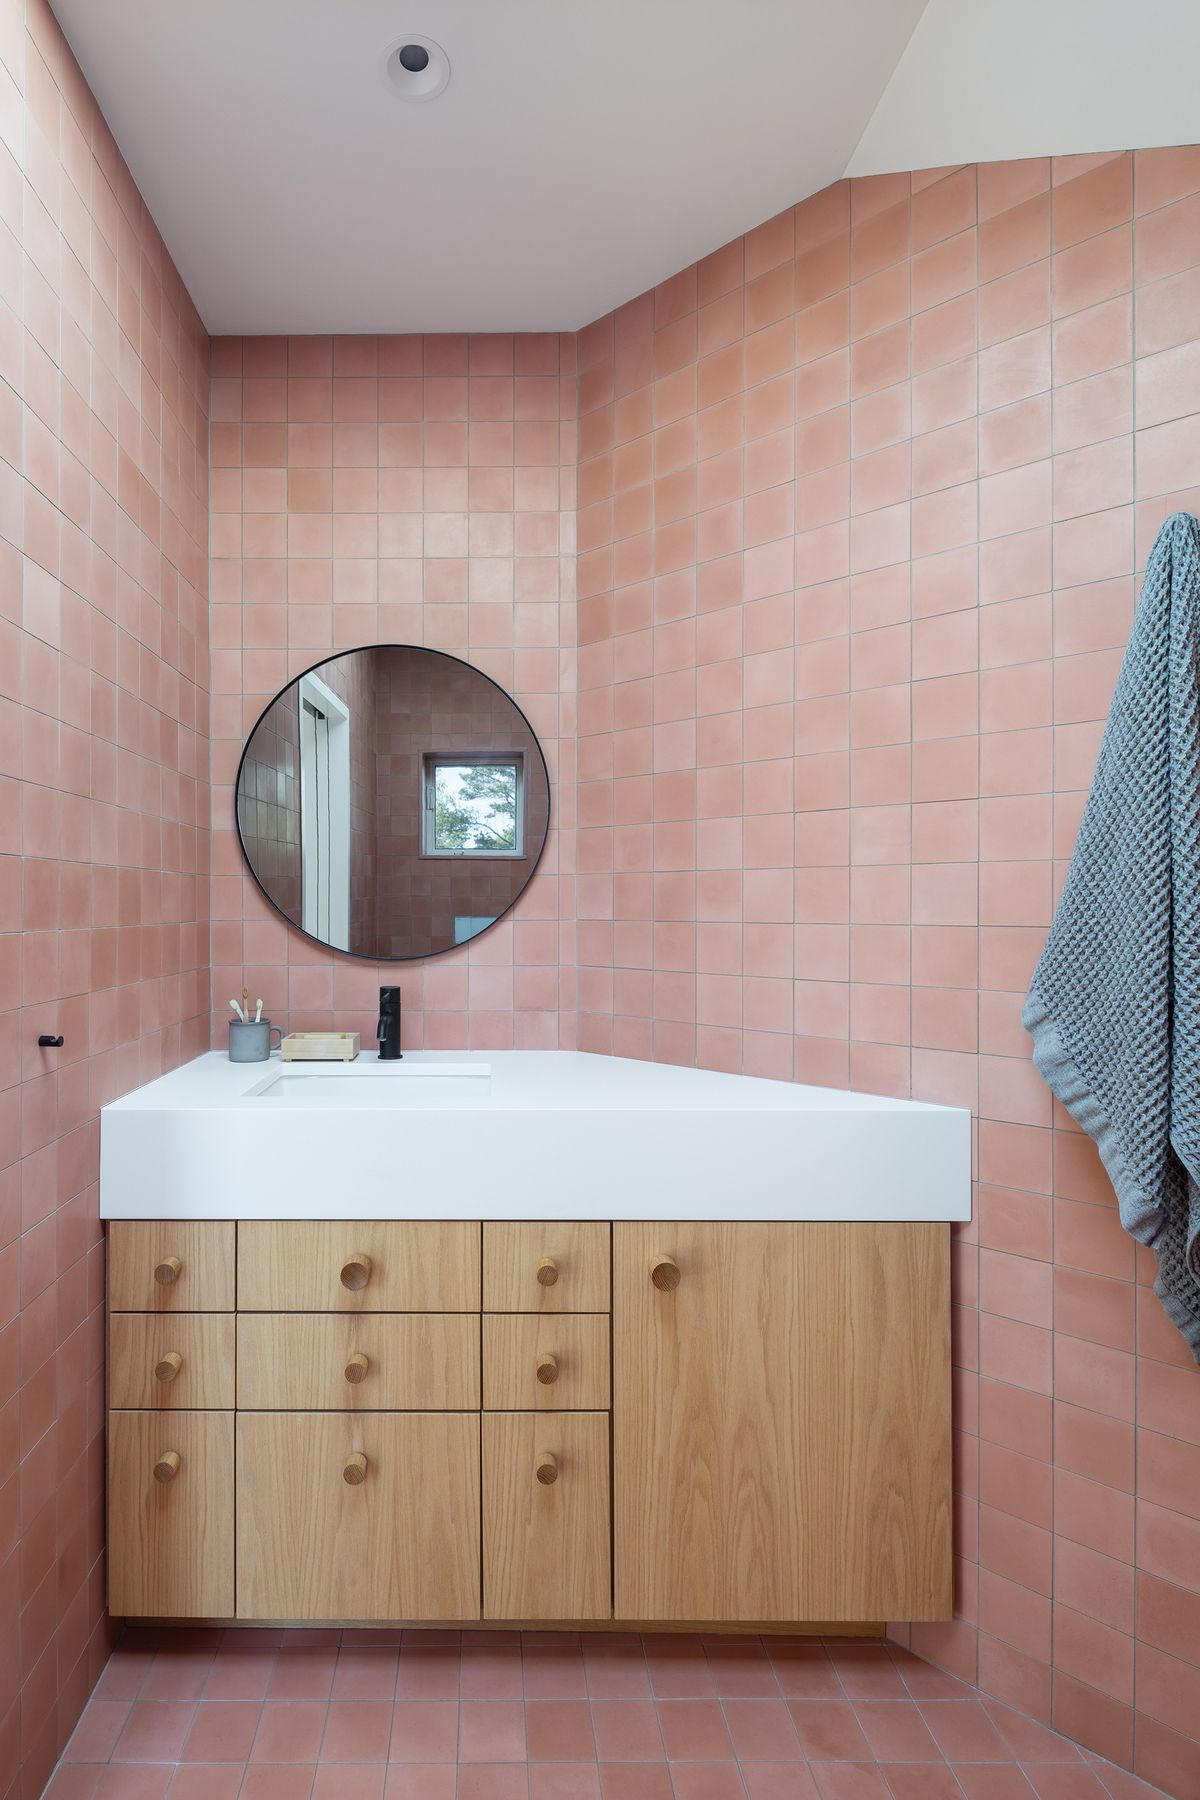 An irregularly shaped bathroom with pink tiles, wood cabinets, a jagged white sink, and round mirror.